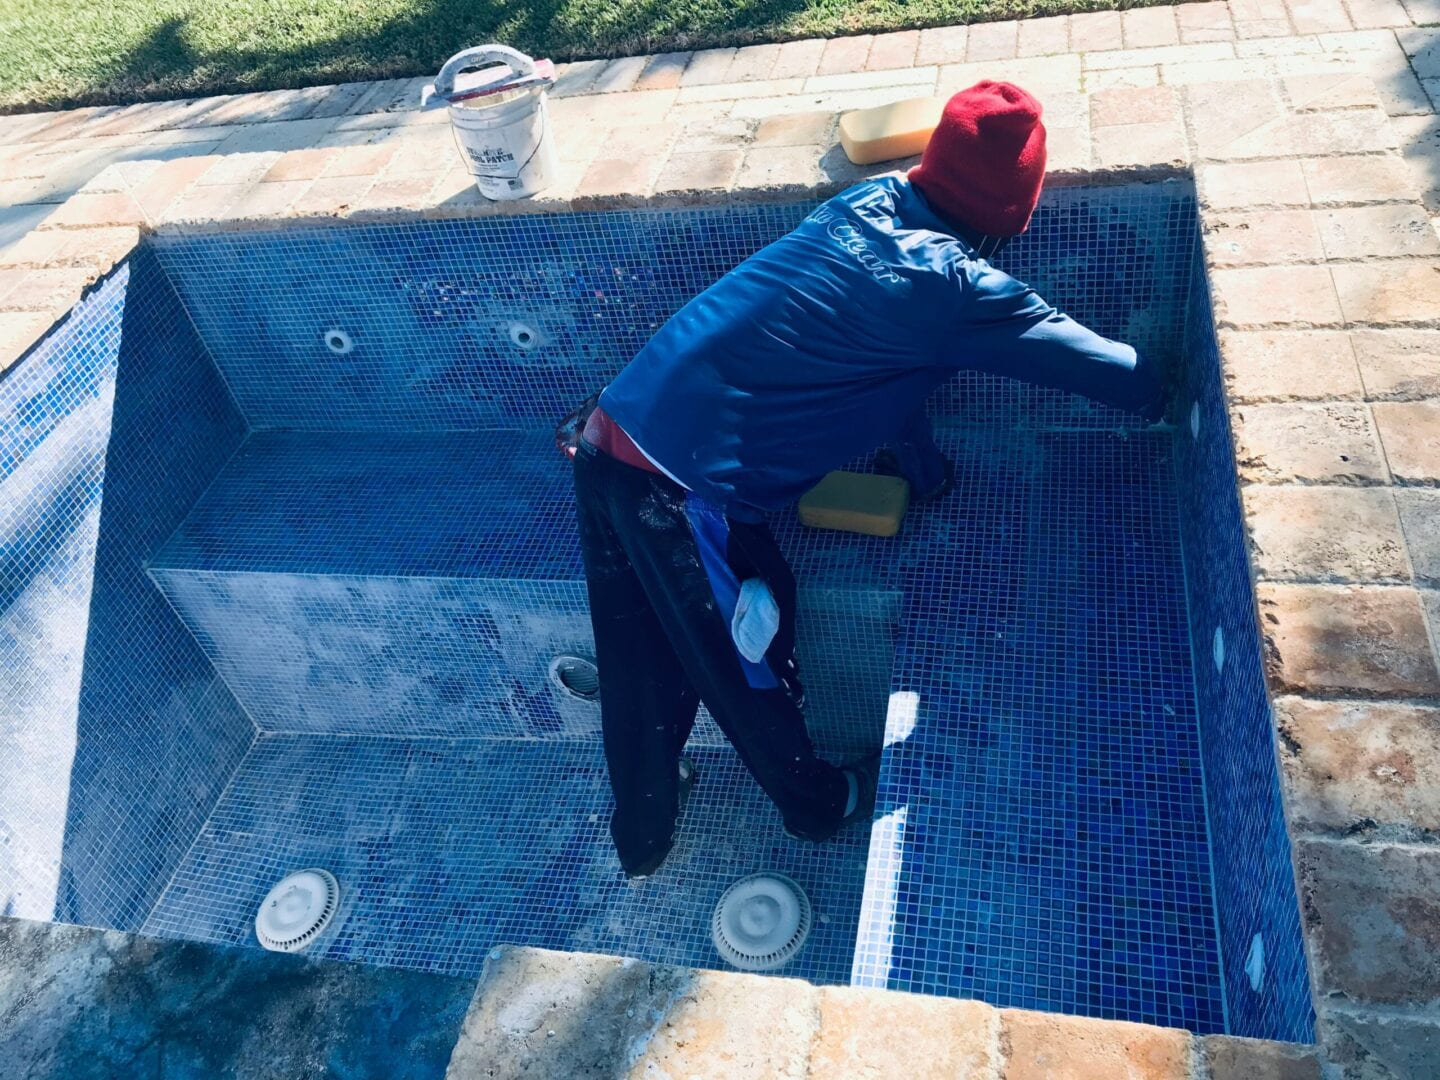 Man with red bonnet scrubbing the tiles of a pool